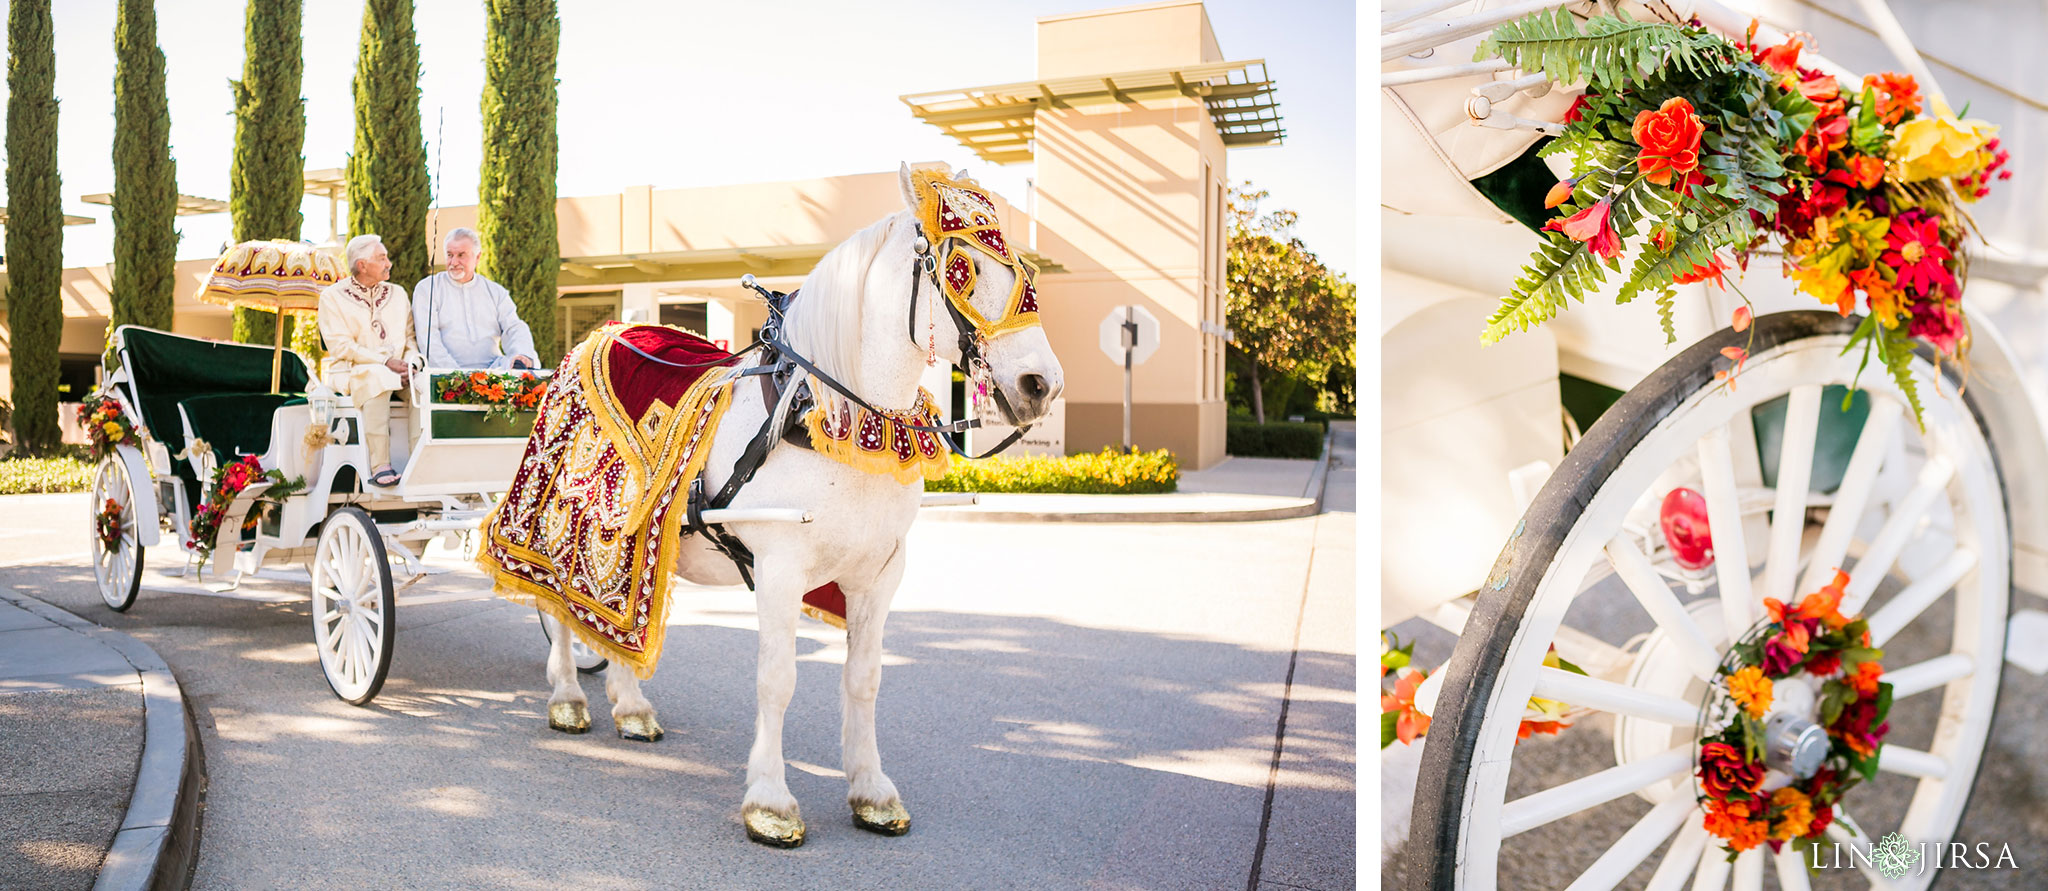 20 four seasons westlake village indian wedding baraat photography